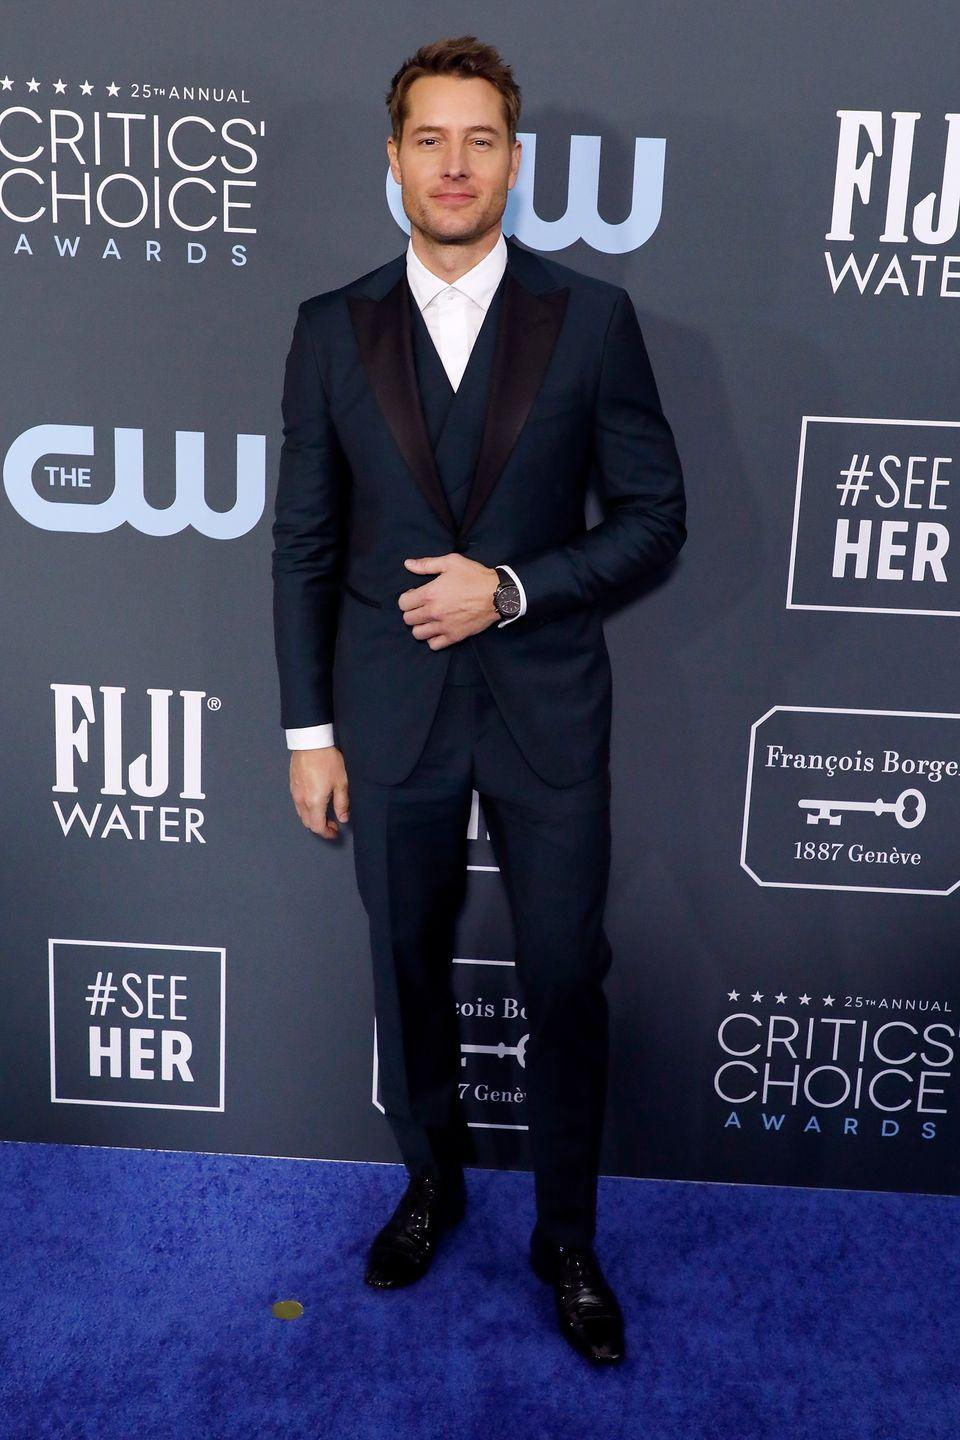 Photo credit: Taylor Hill - Getty Images